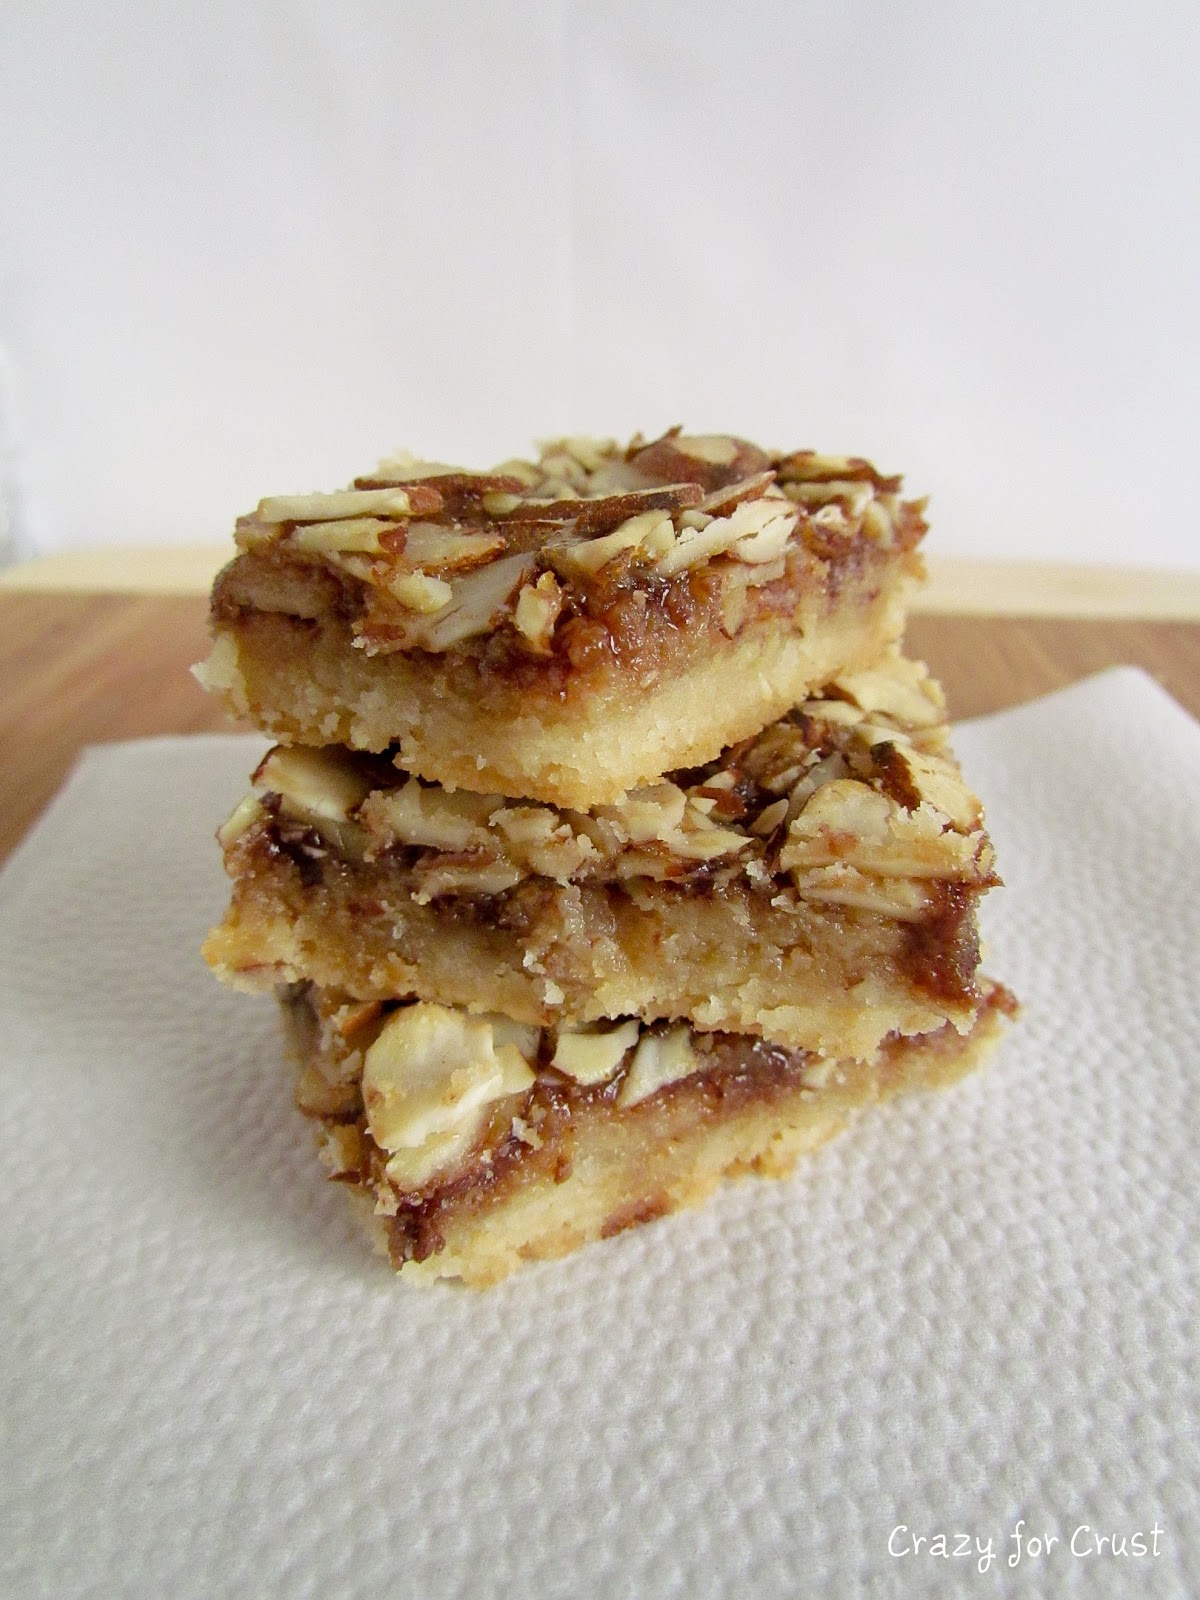 Almond Toffee Bars - Crazy for Crust